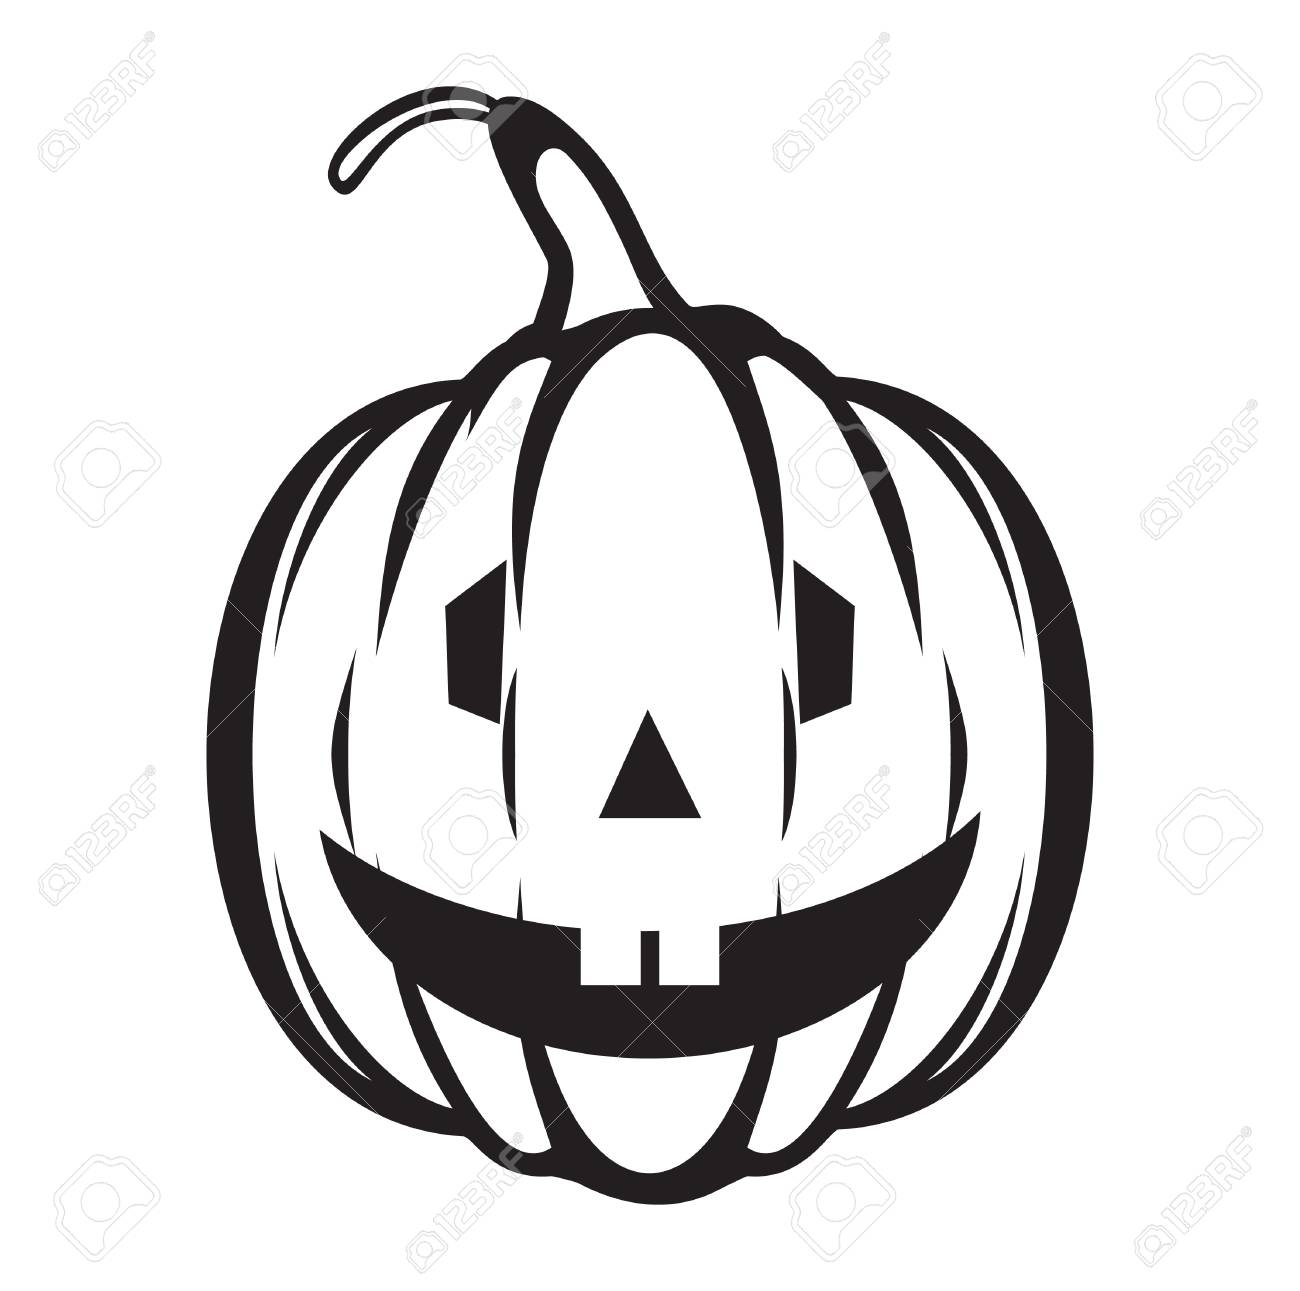 halloween pumpkin vector icon royalty free cliparts vectors and rh 123rf com Pumpkin Silhouette Vector Pumpkin Vine Vector